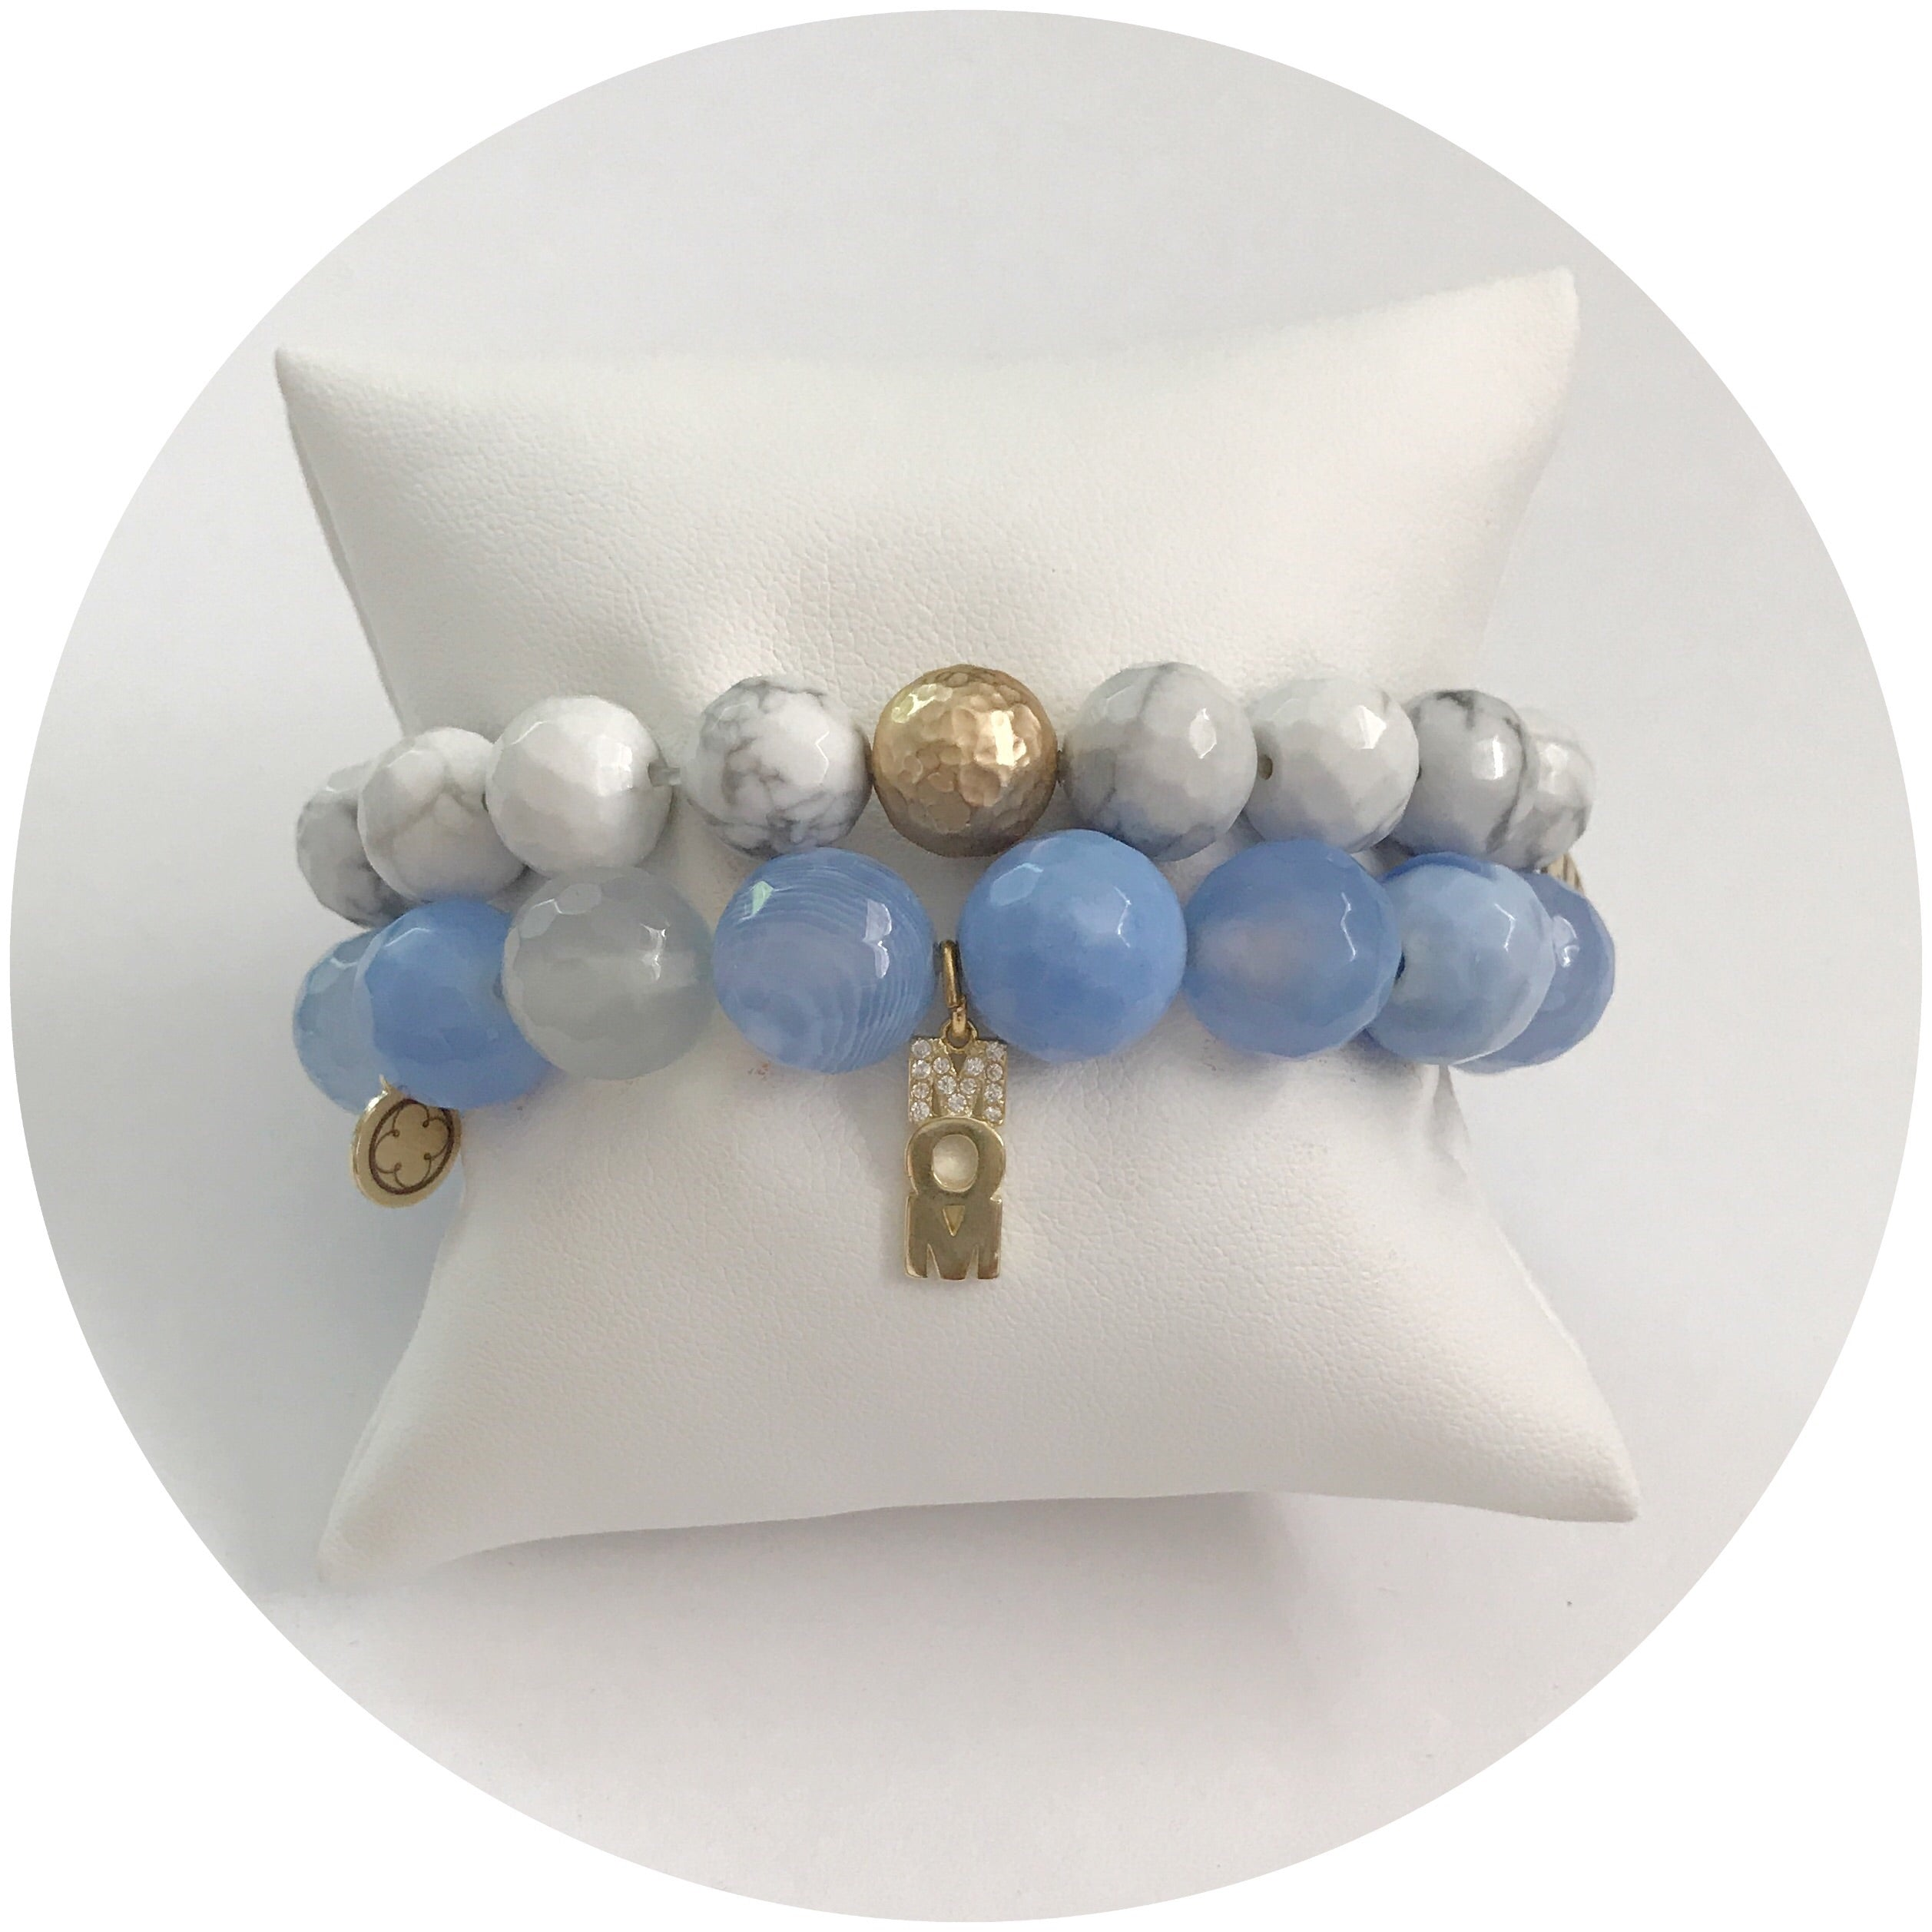 Mother's Day Pavé Serenity Blue Agate Arm Party - Oriana Lamarca LLC